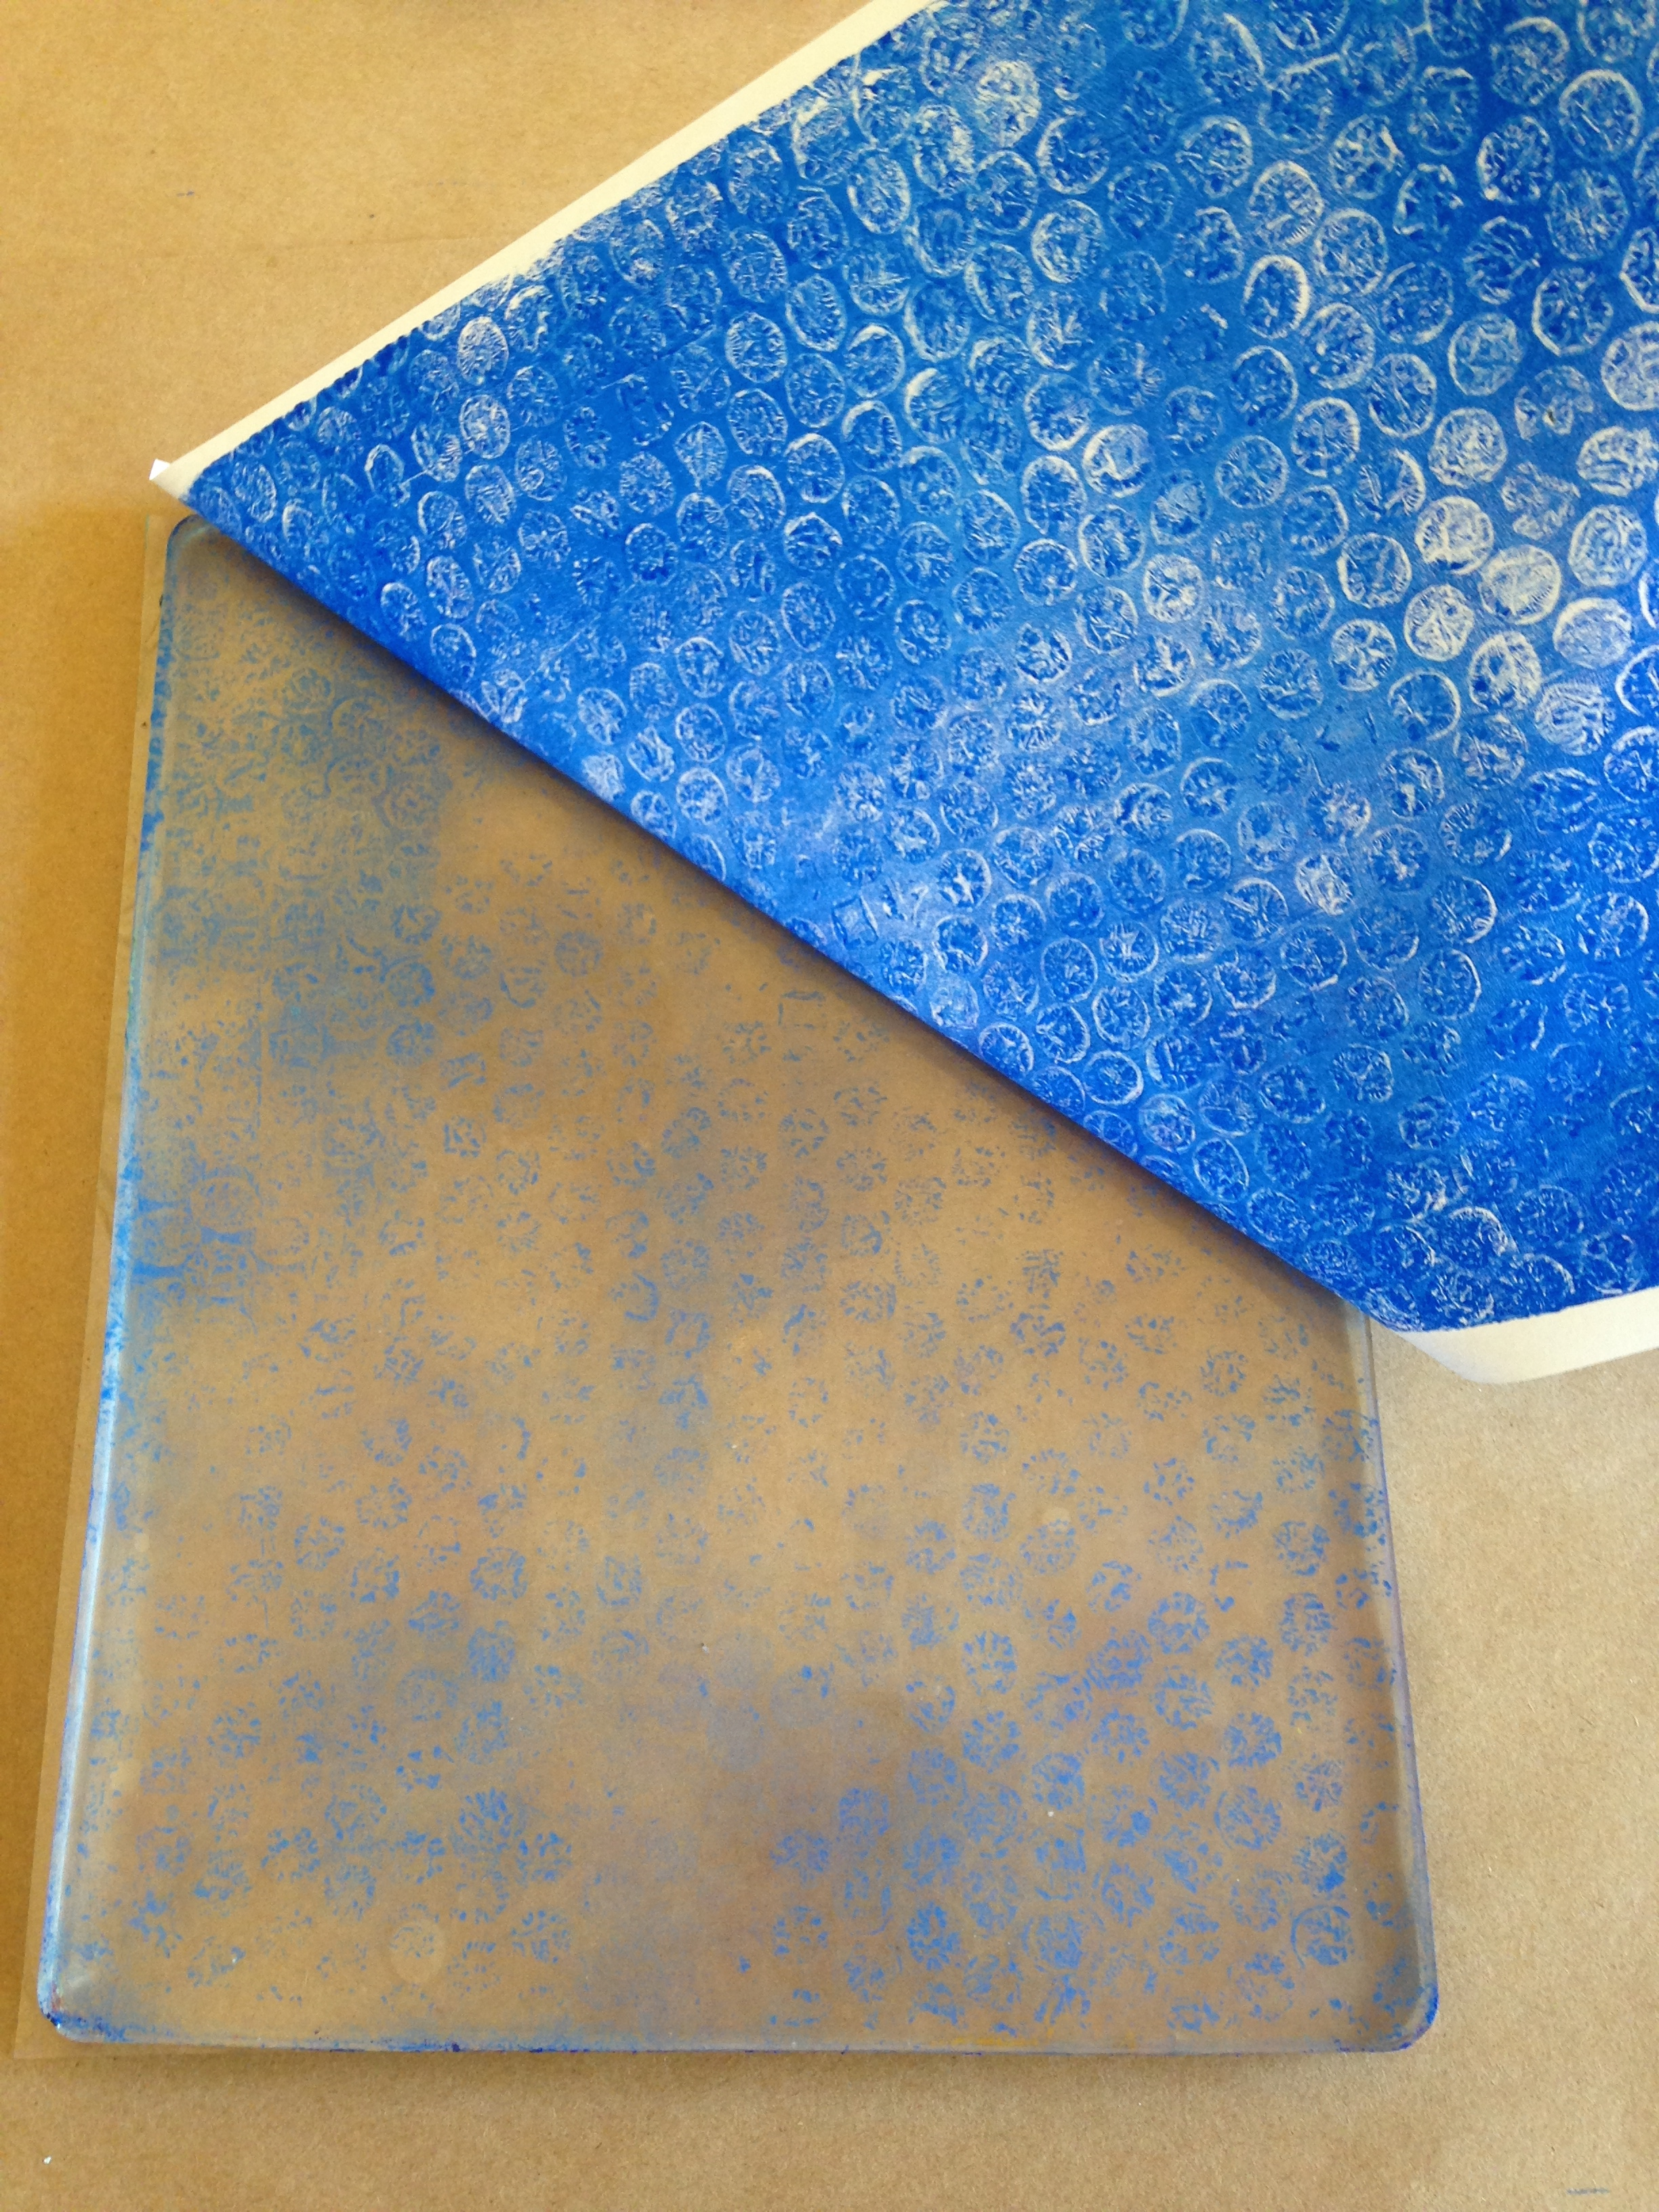 Steps for making a Gelli print